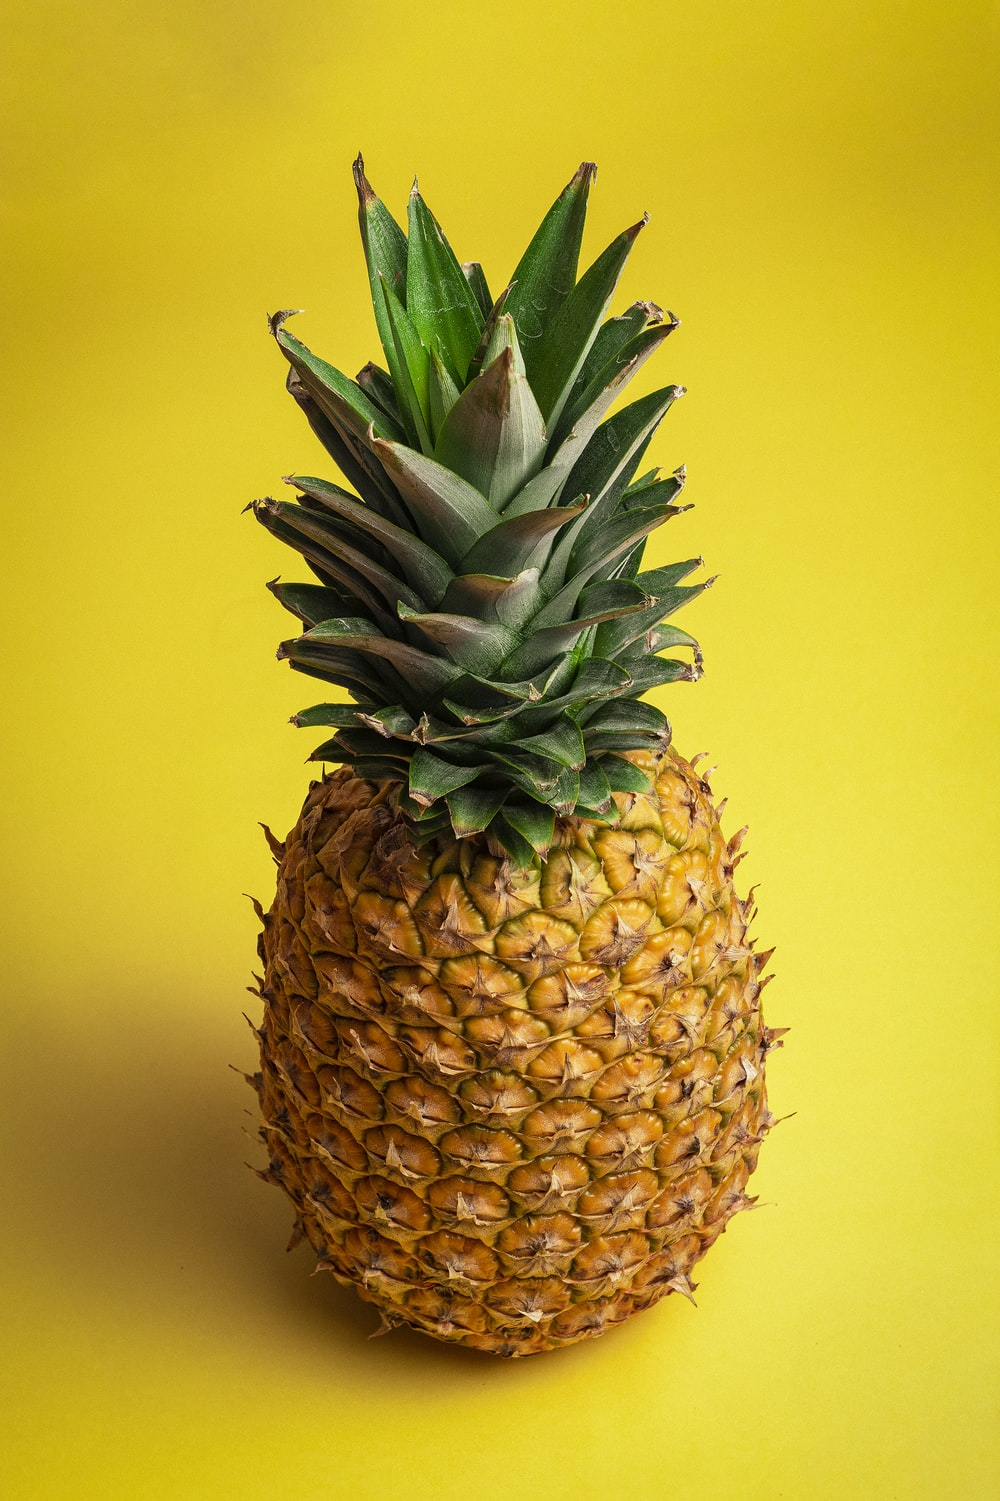 pineapple fruit with yellow background